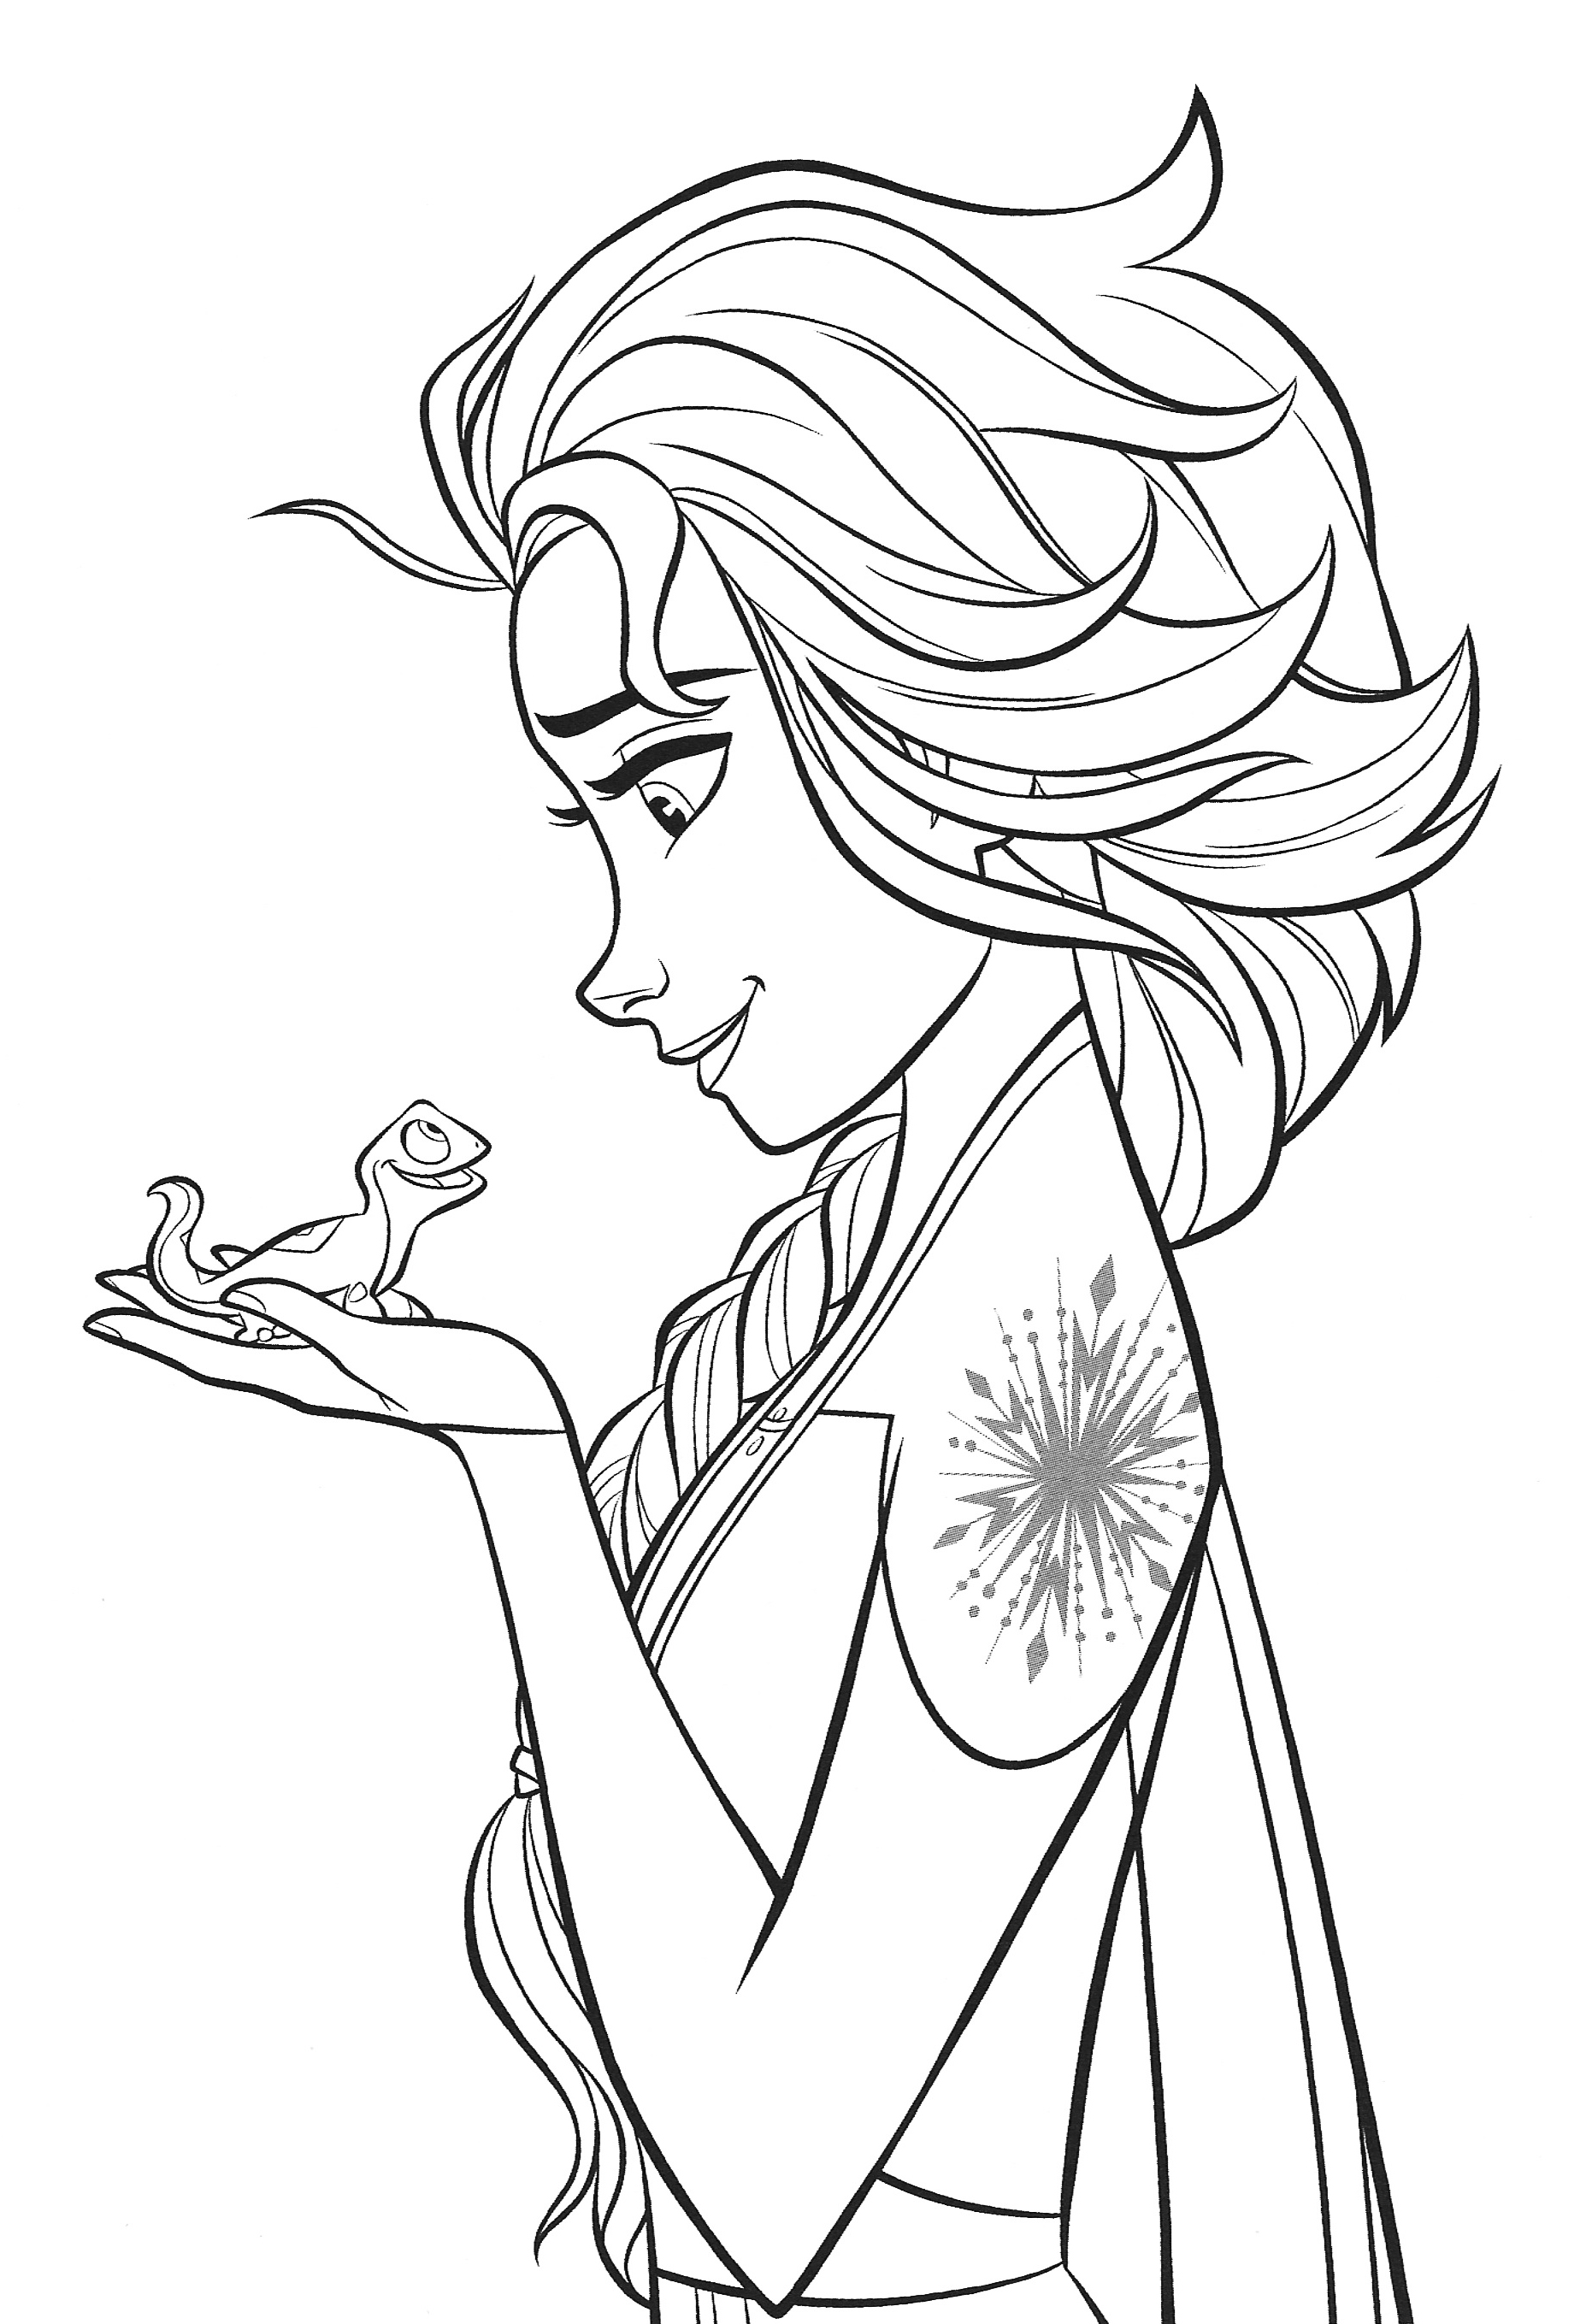 a coloring picture of frozen frozen 2 coloring pages into the unknown colouring mermaid of frozen picture coloring a